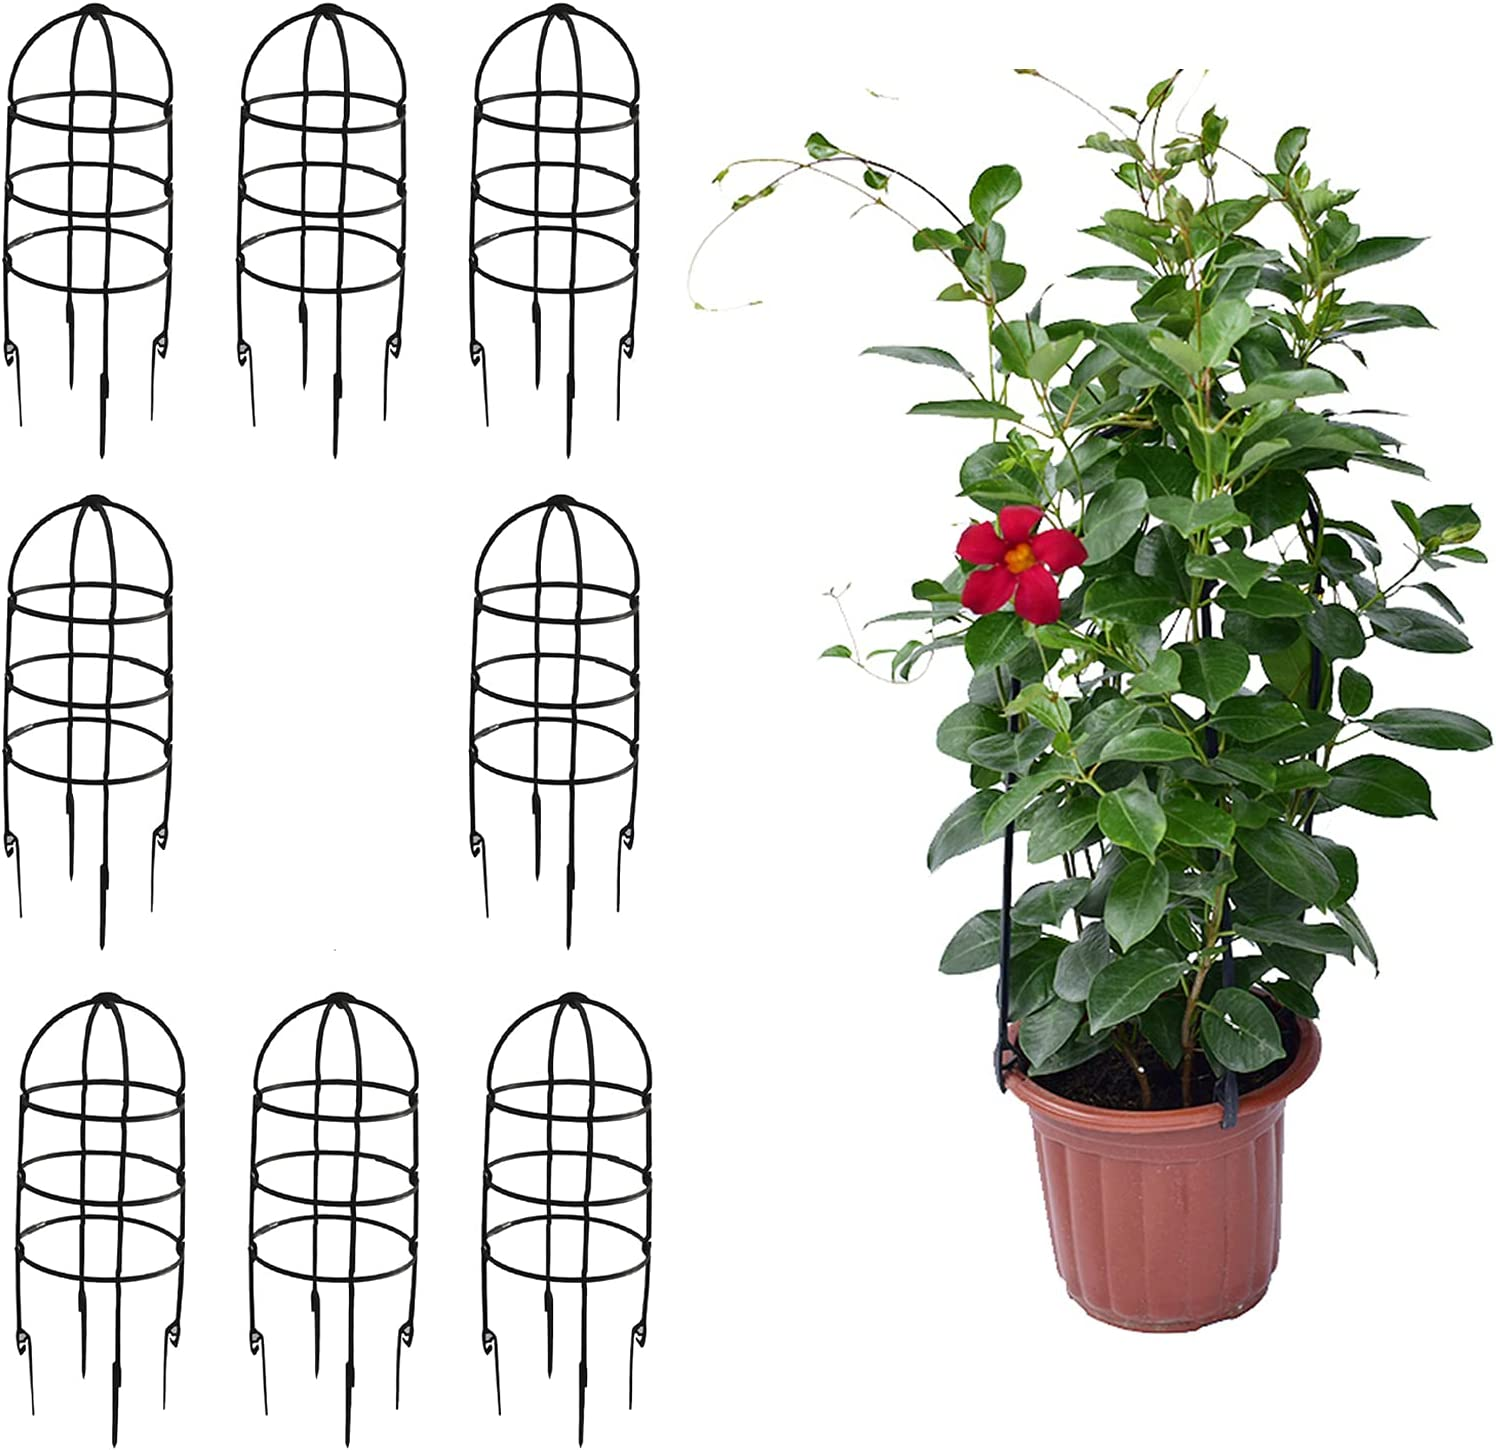 keebgyy 8 Sets Plant specialty shop Max 75% OFF Cages Stakes Vegetable Tomato Garden